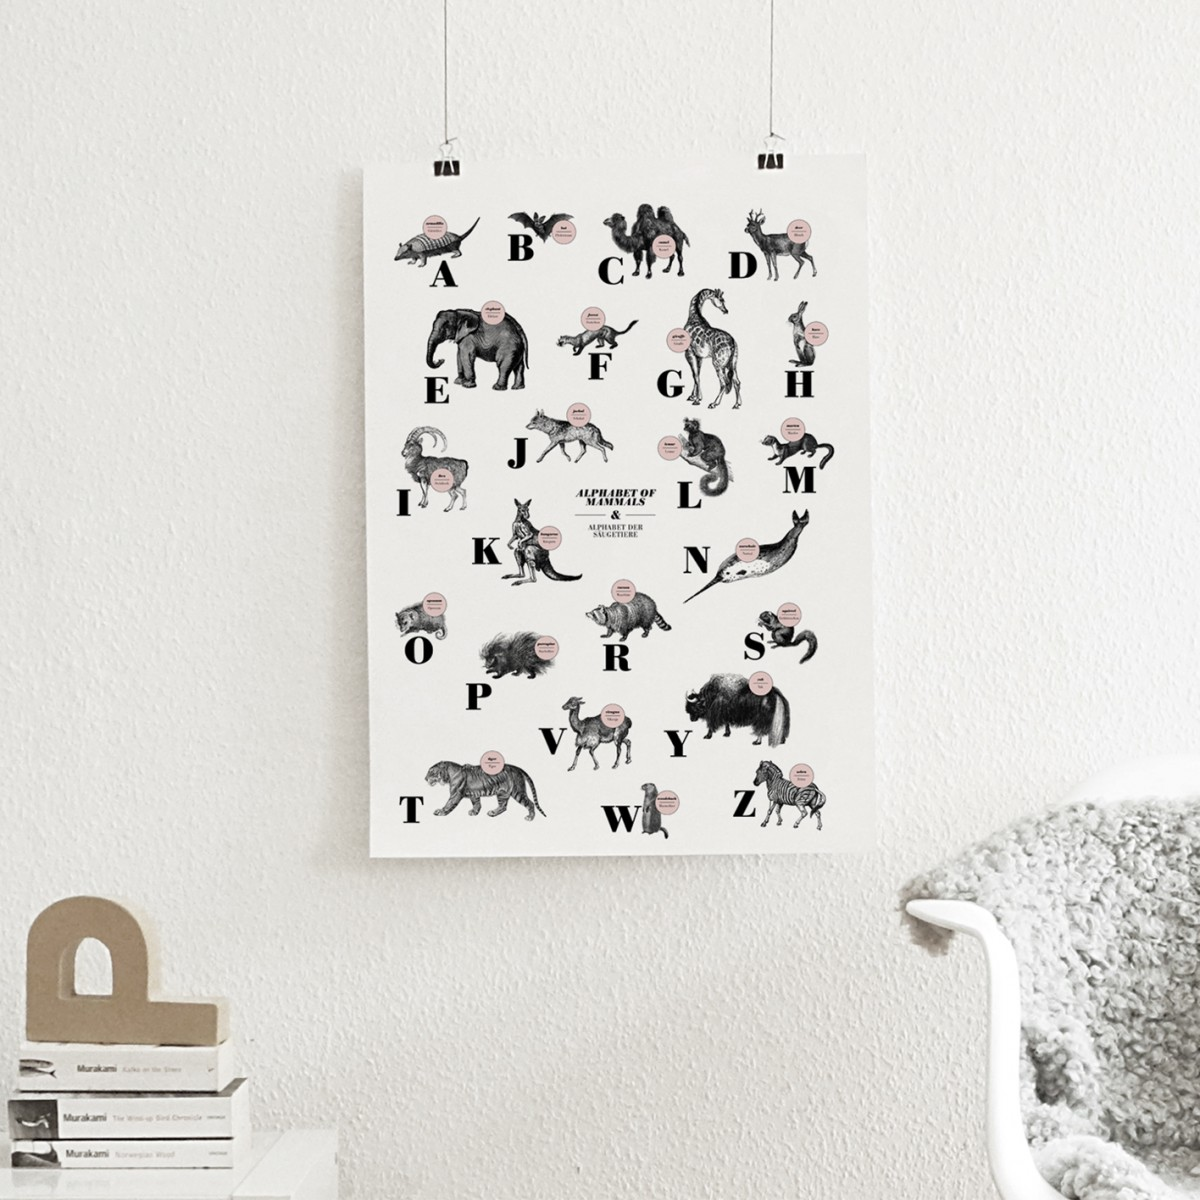 The True Type Poster, ABC der Säugetiere / alphabet of mammals in Deutsch/Englisch, DIN A1, Plakat, Typografie, Design